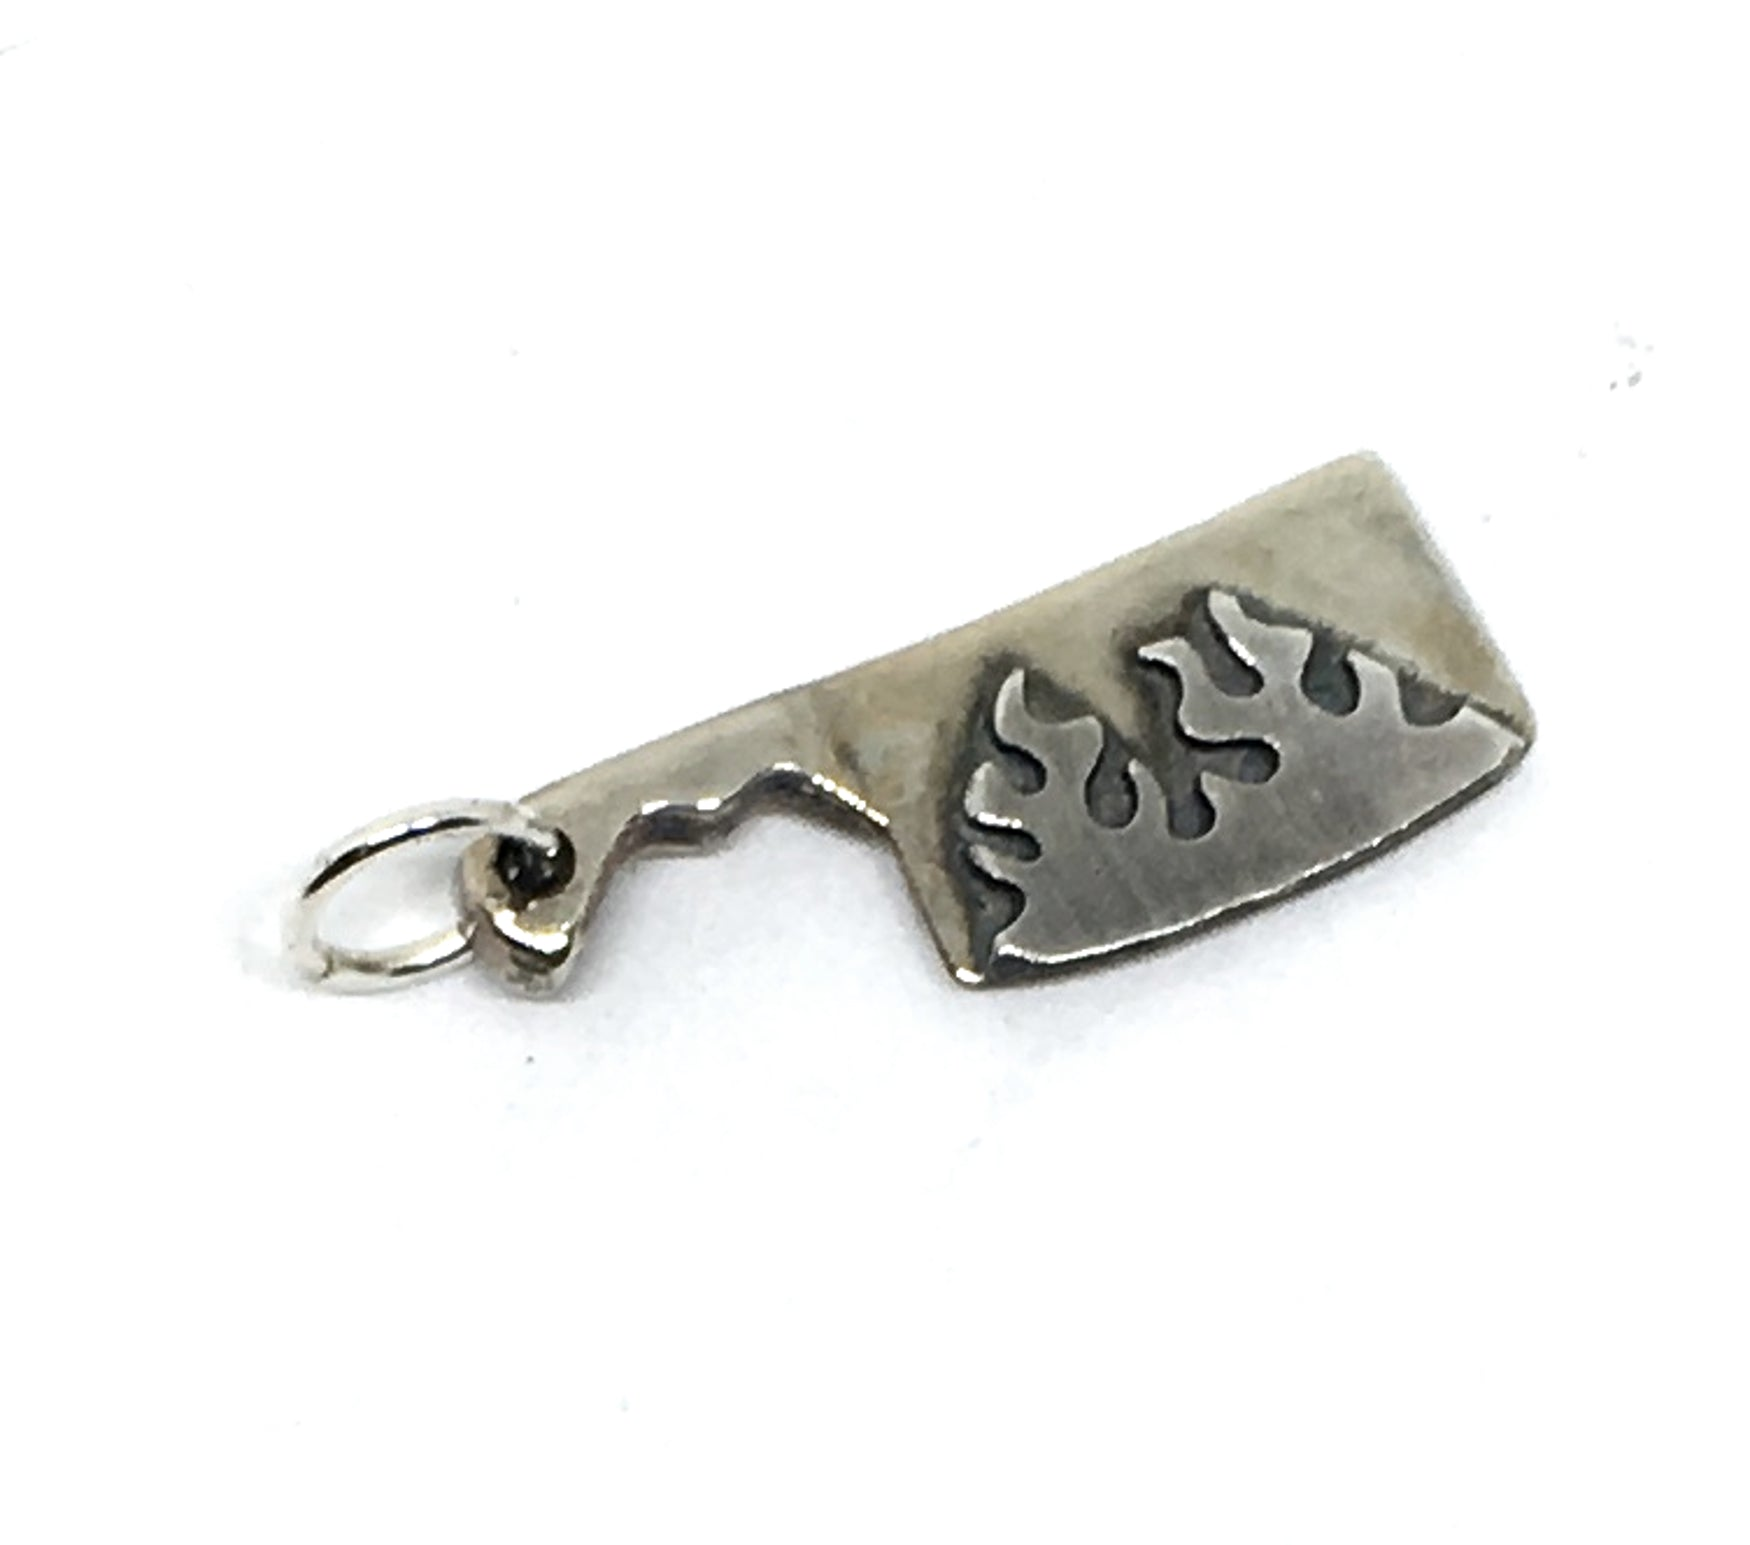 this cleaver charm can be added to a charm bracelet or slipped onto a chaim